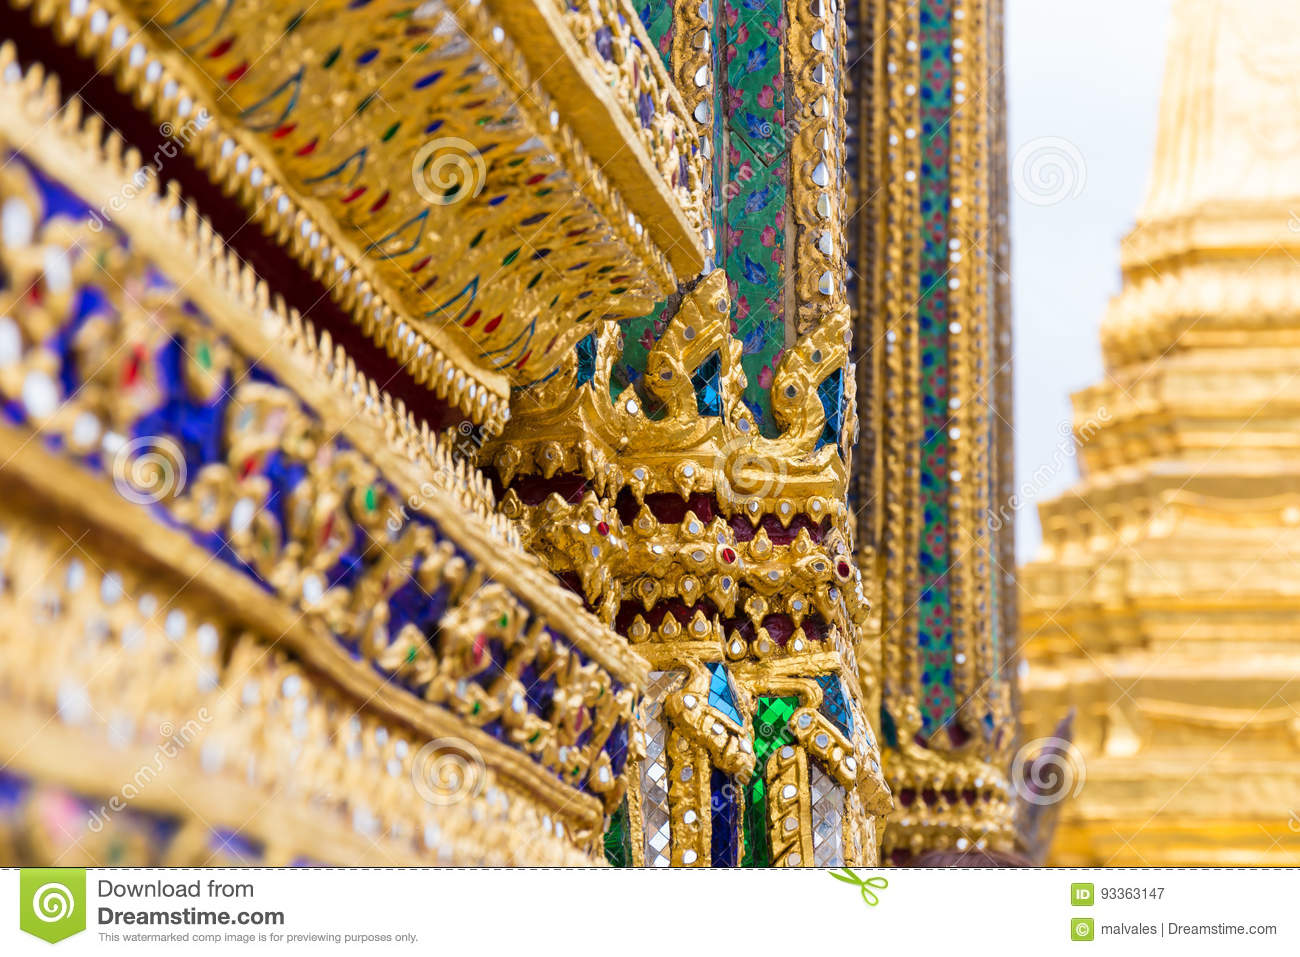 Thai Traditional Mosaic Art Stock Image - Image of decor, background ...